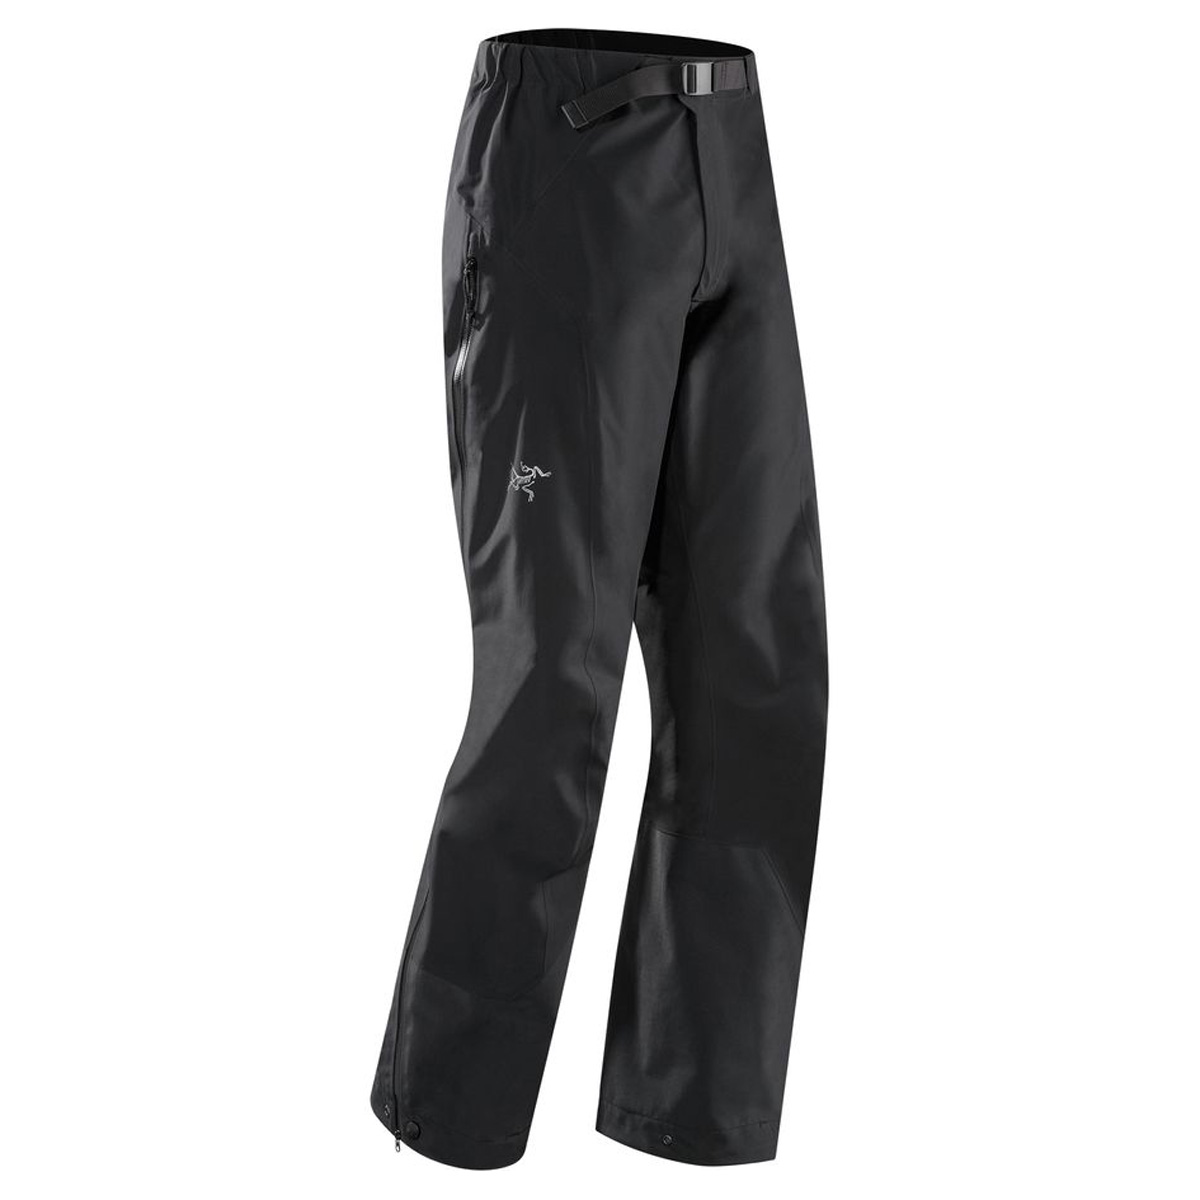 Zeta LT pants from Arc'teryx